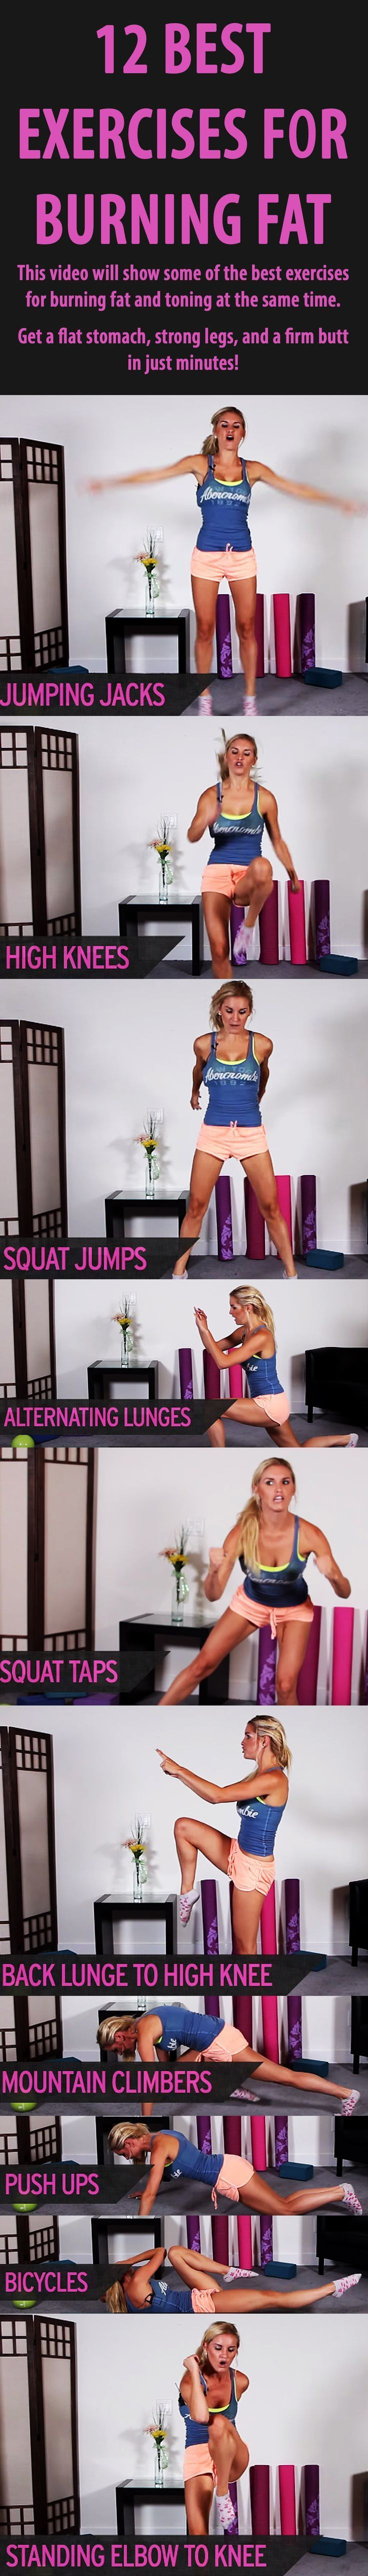 Do these for HIIT workout | Calorie burning workout: 12 absolutely best exercises for BURNING FAT.